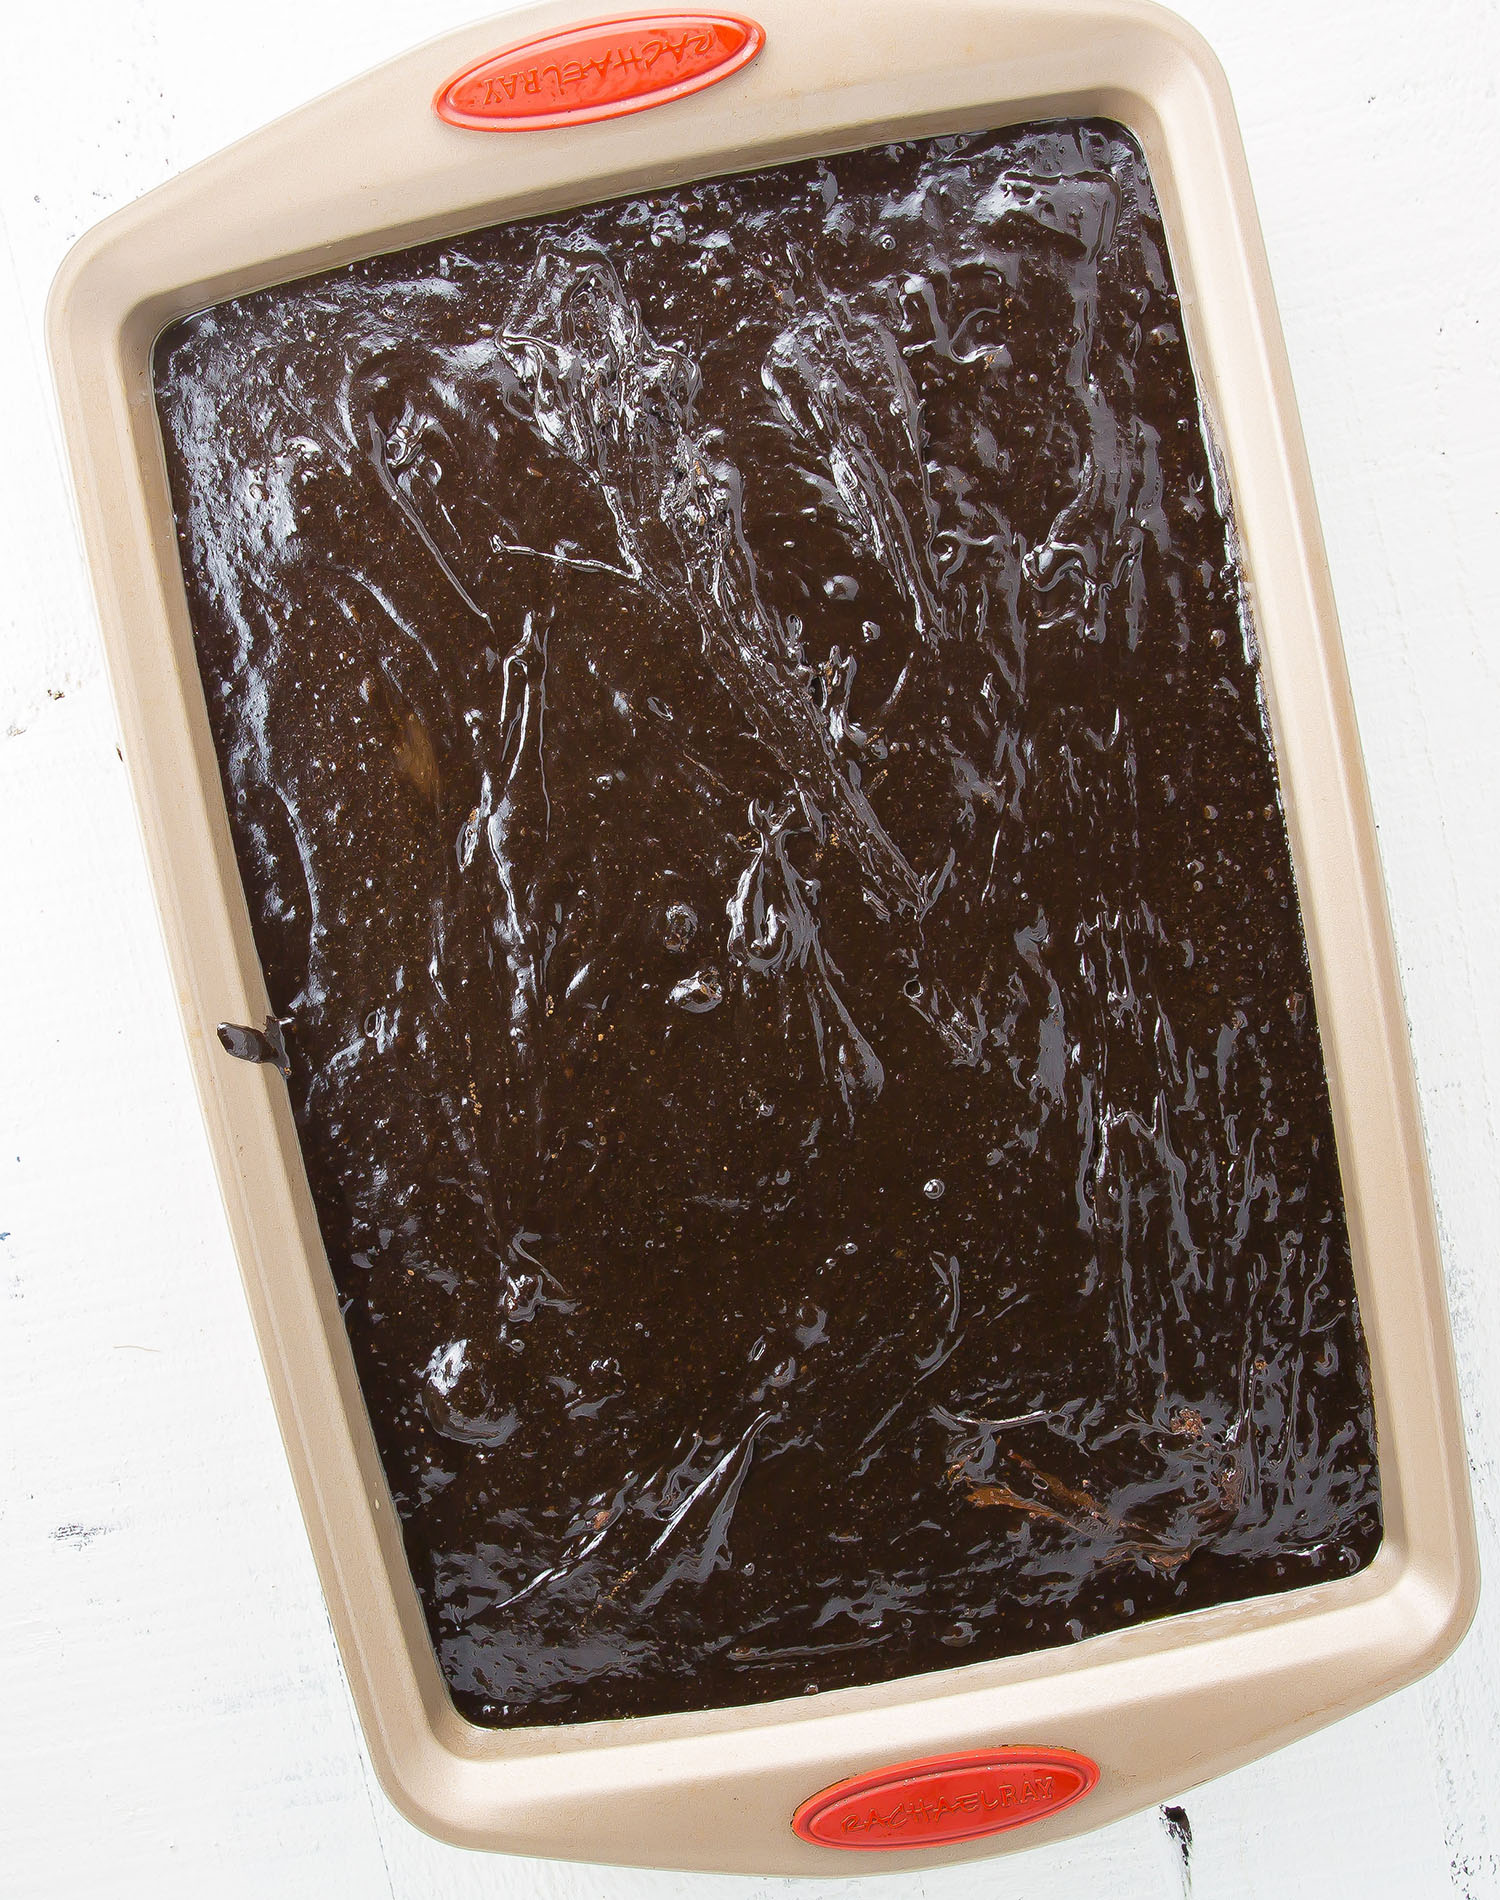 Peppermint Pattie Brownie Batter #glutenfree #recipes #brownierecipe